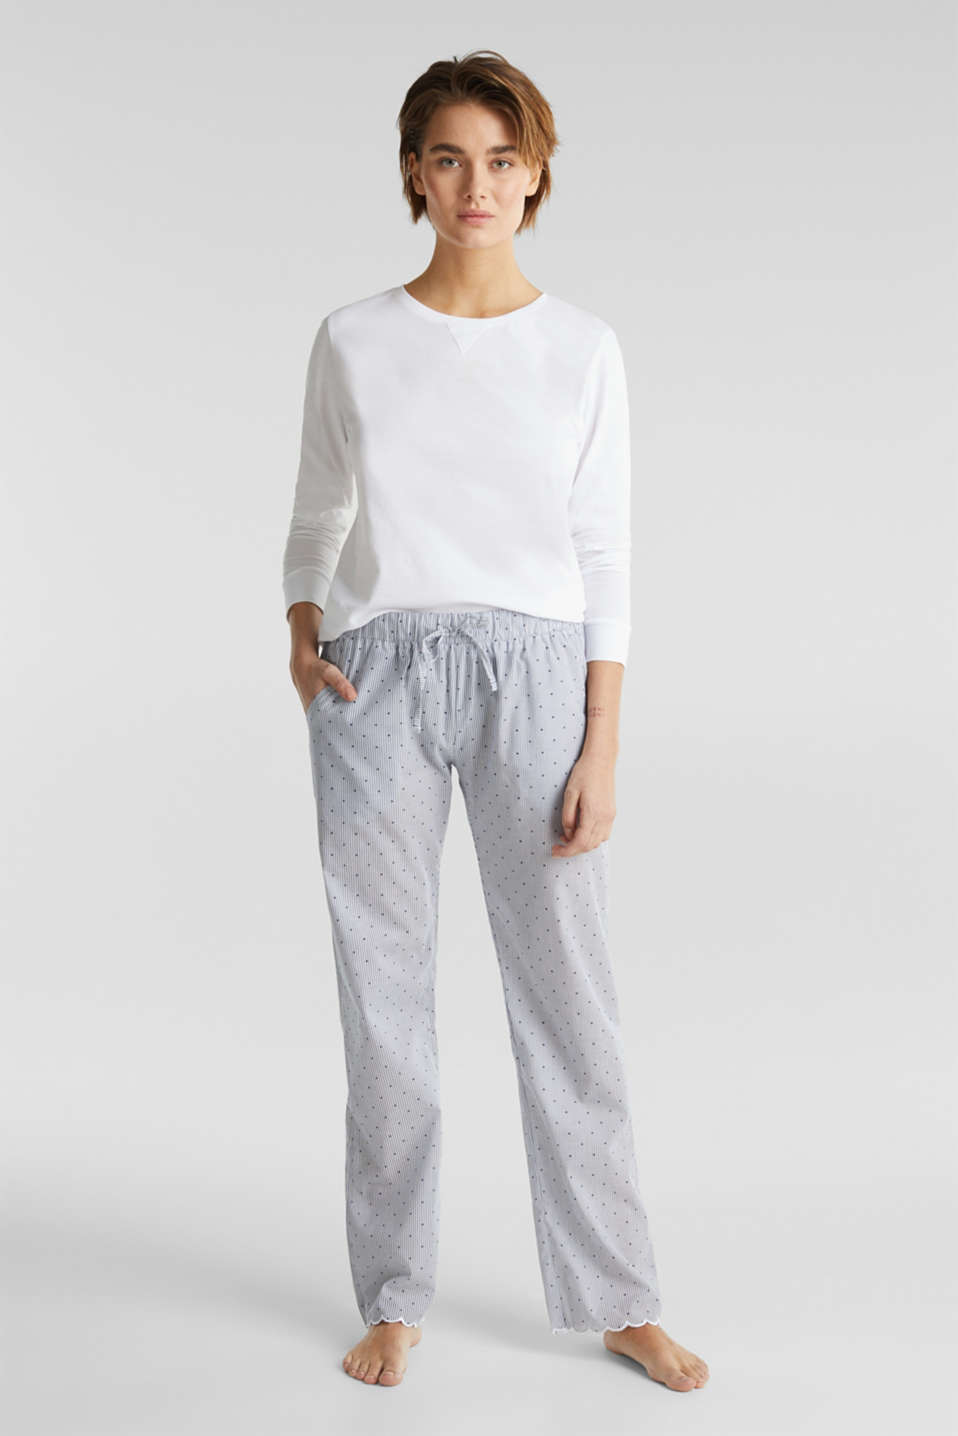 Esprit - Woven trousers made of 100% cotton